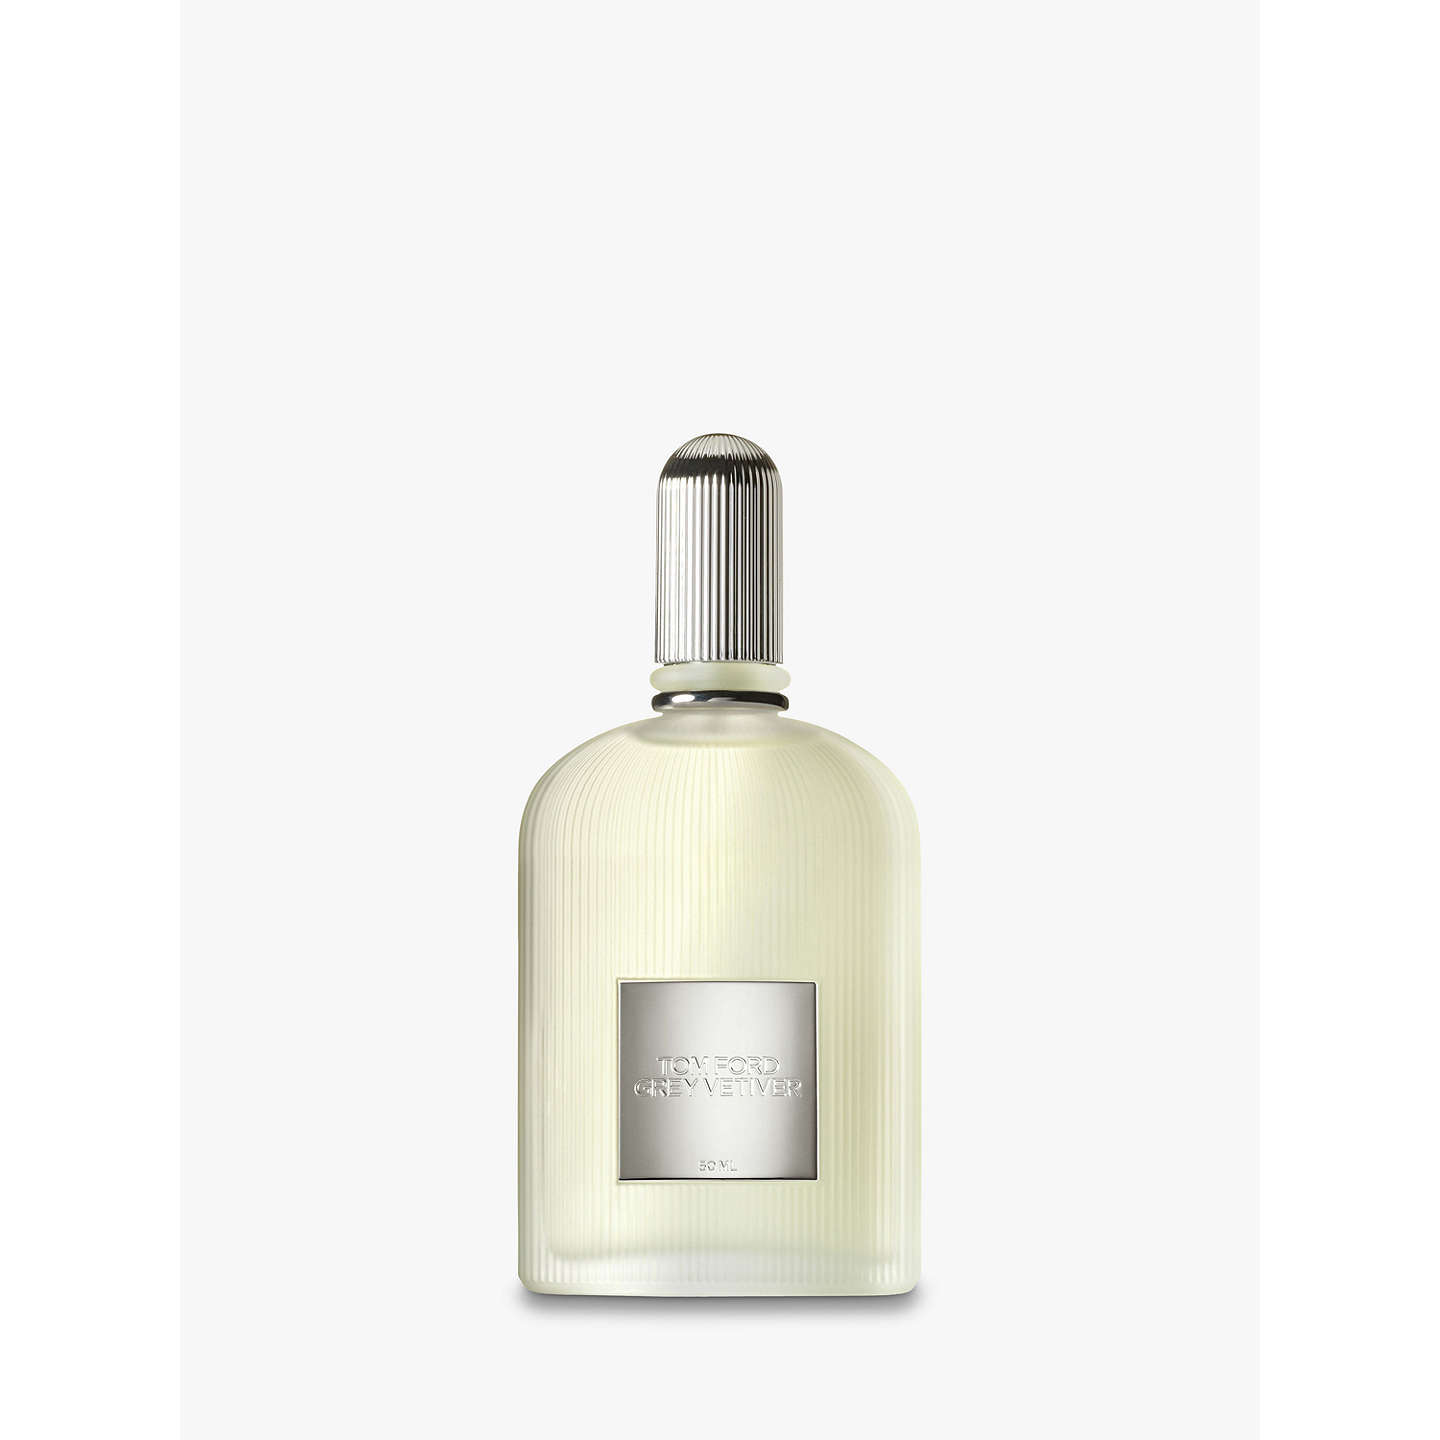 BuyTOM FORD Grey Vetiver Eau de Parfum, 50ml Online at johnlewis.com